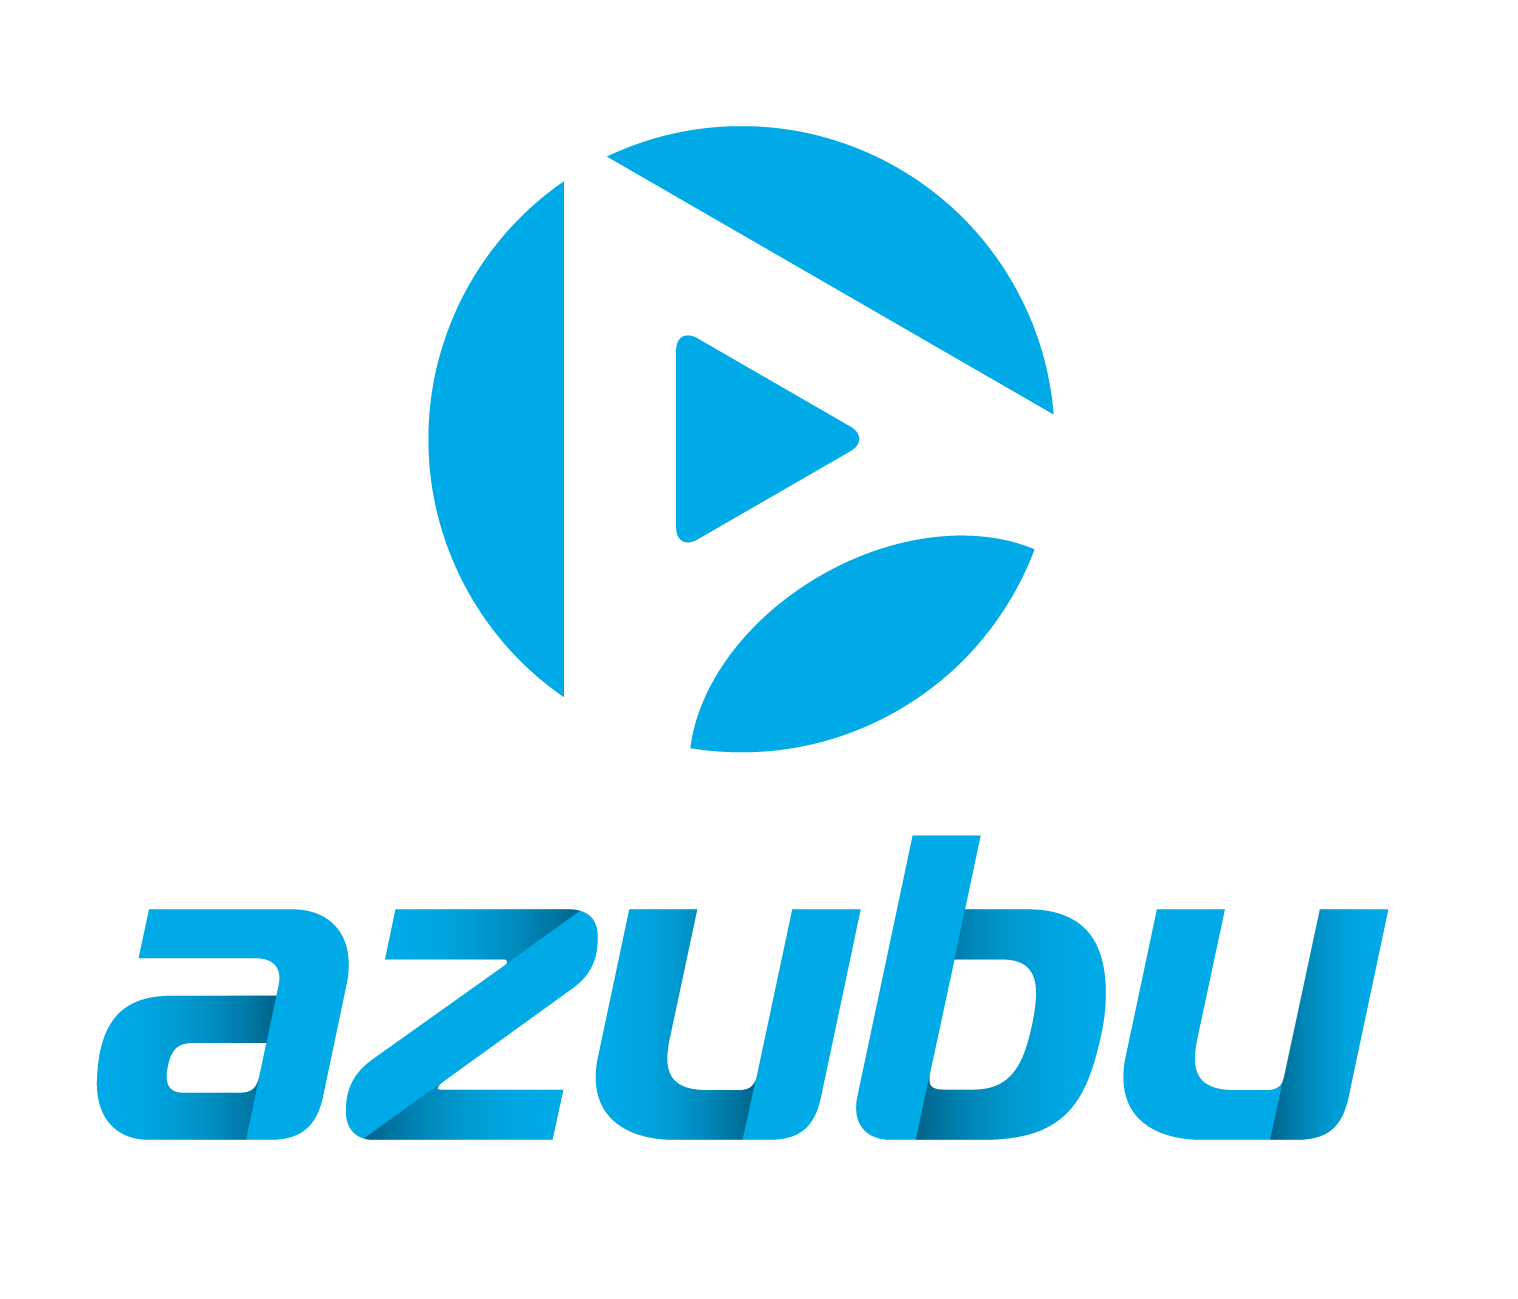 azubu raises million euros to expand global esports network azubu raises 55 million euros to expand global esports network